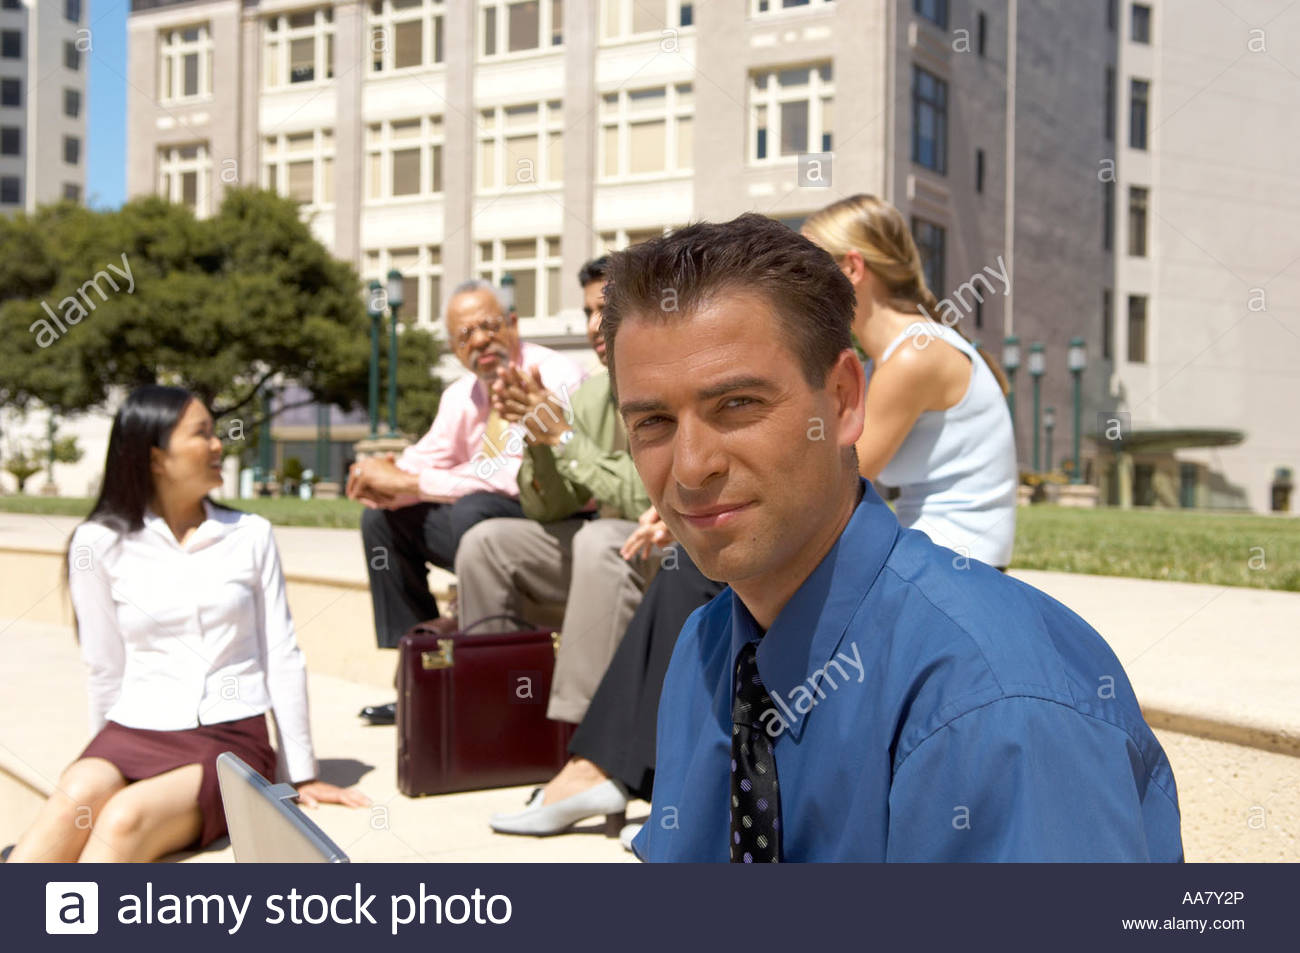 Businessman sitting separately from colleagues - Stock Image